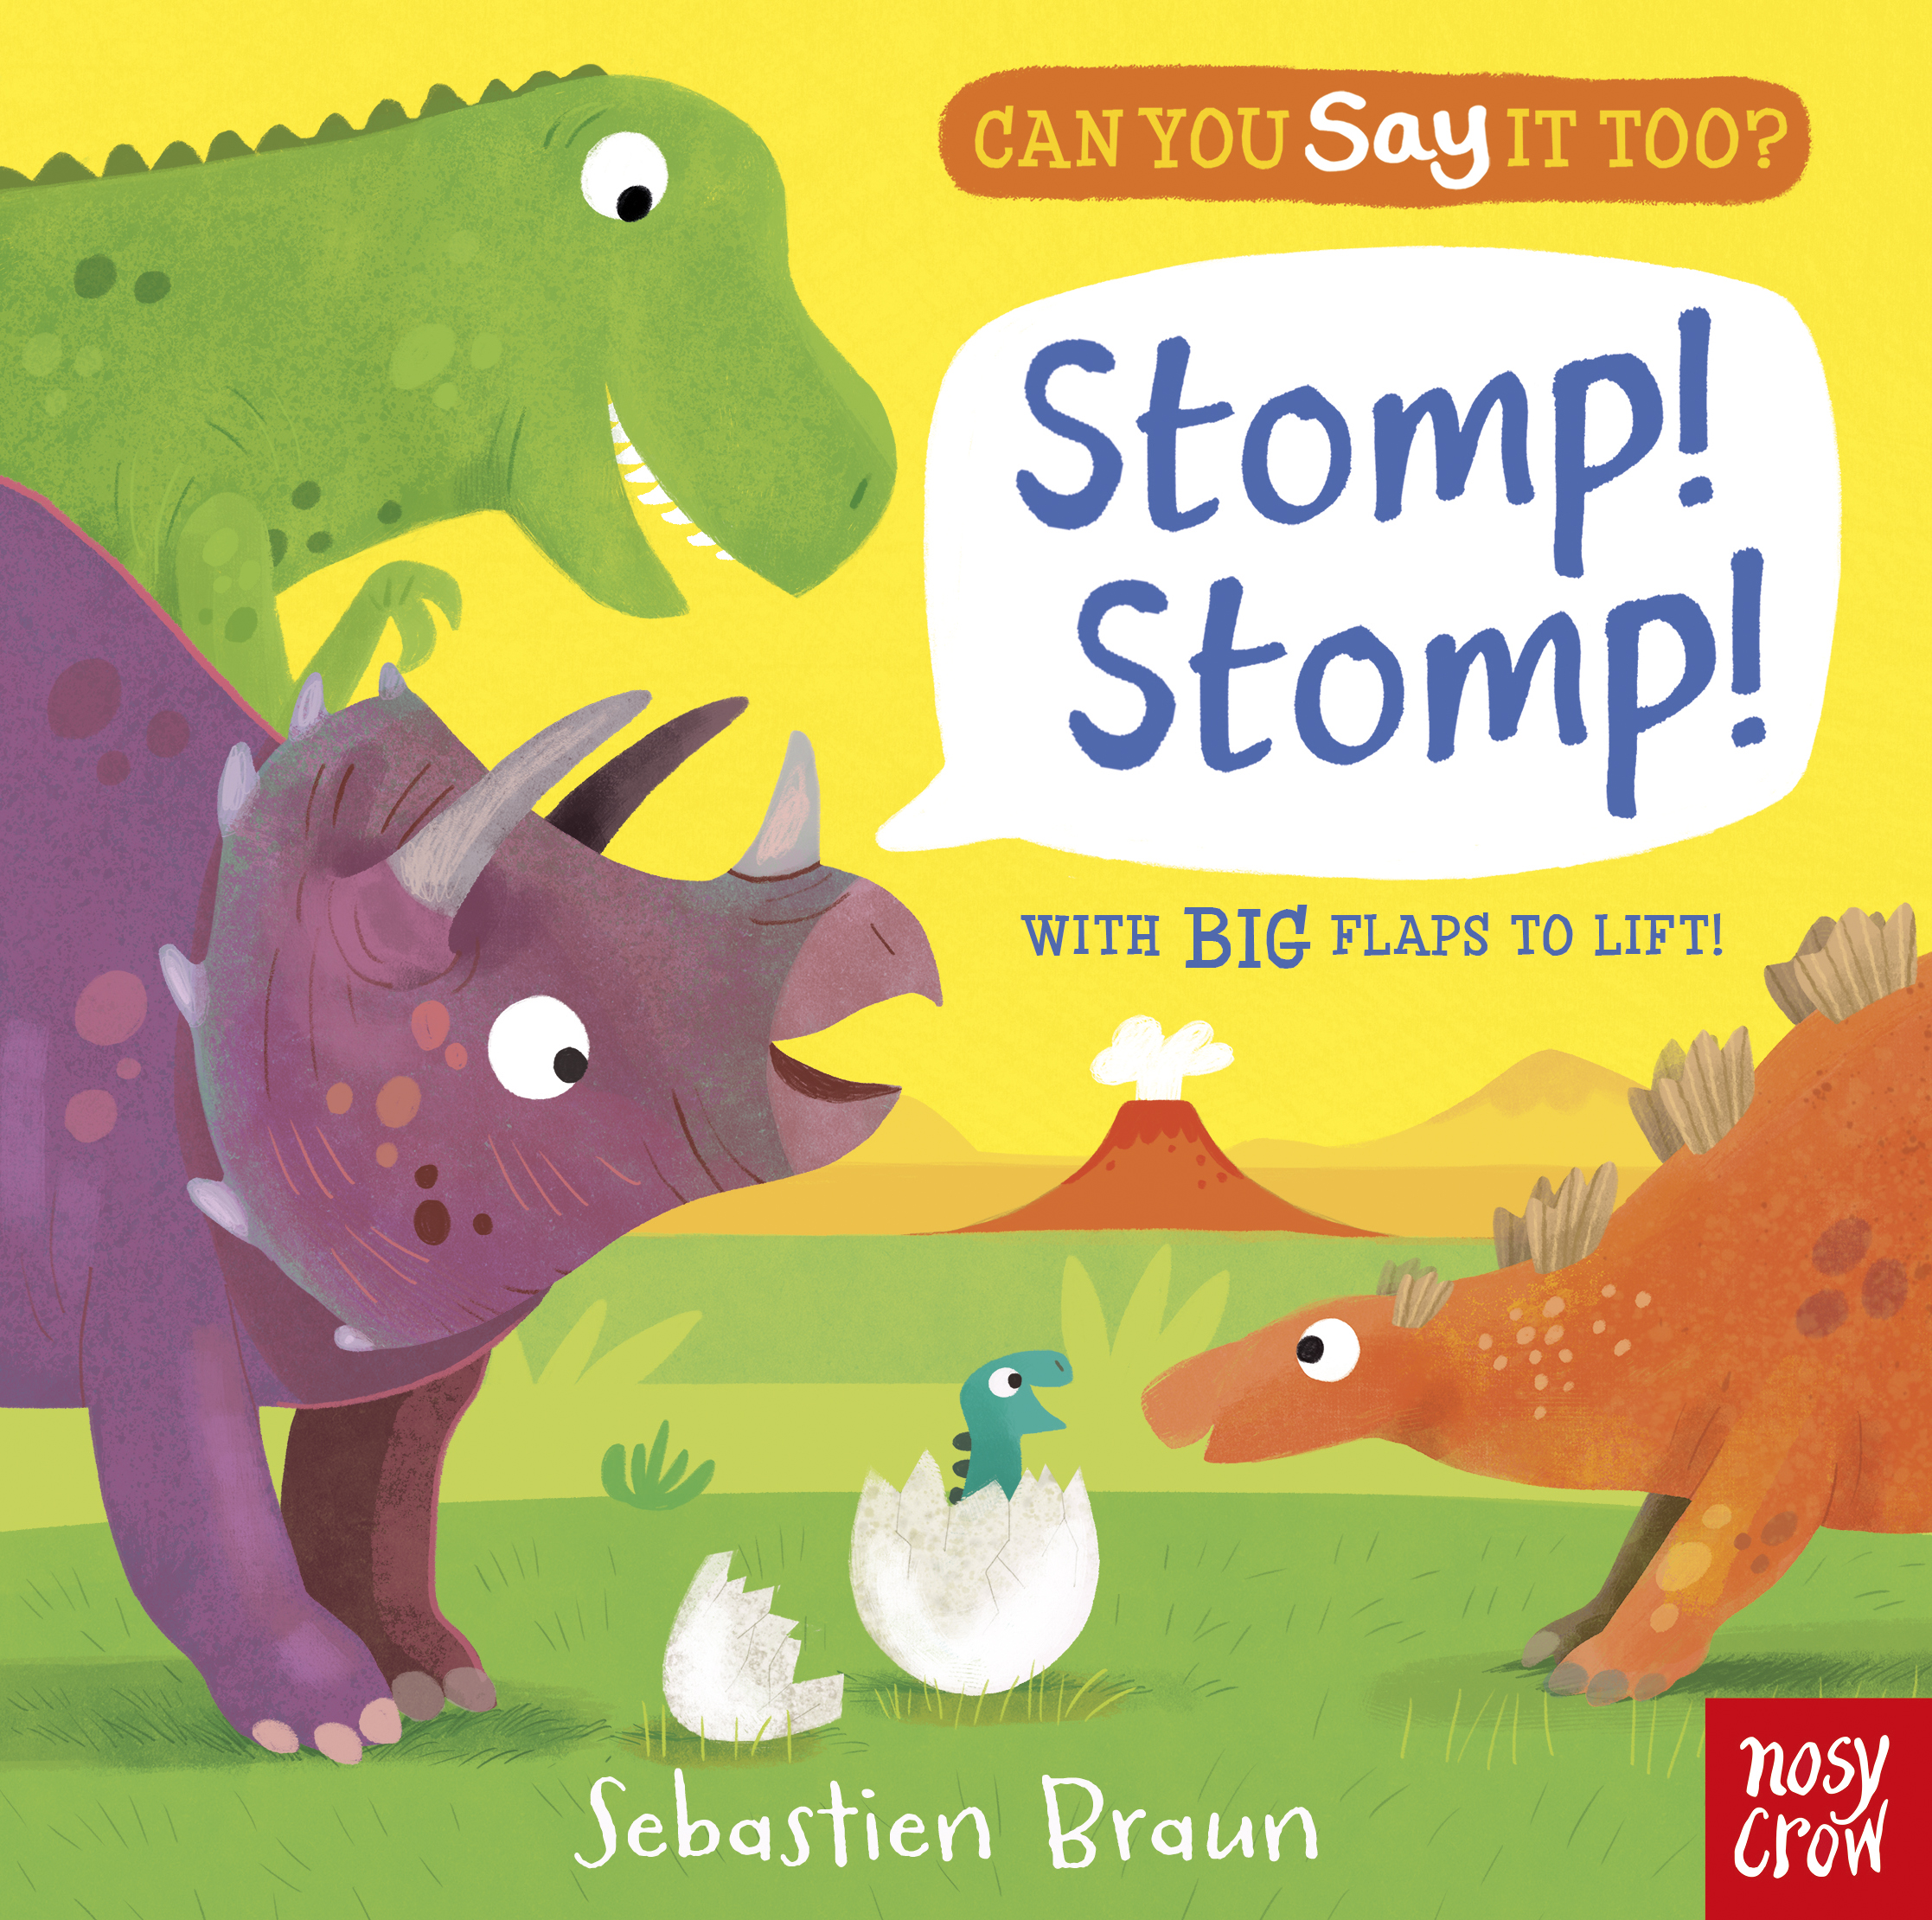 Can You Say It Too? Stomp Stomp